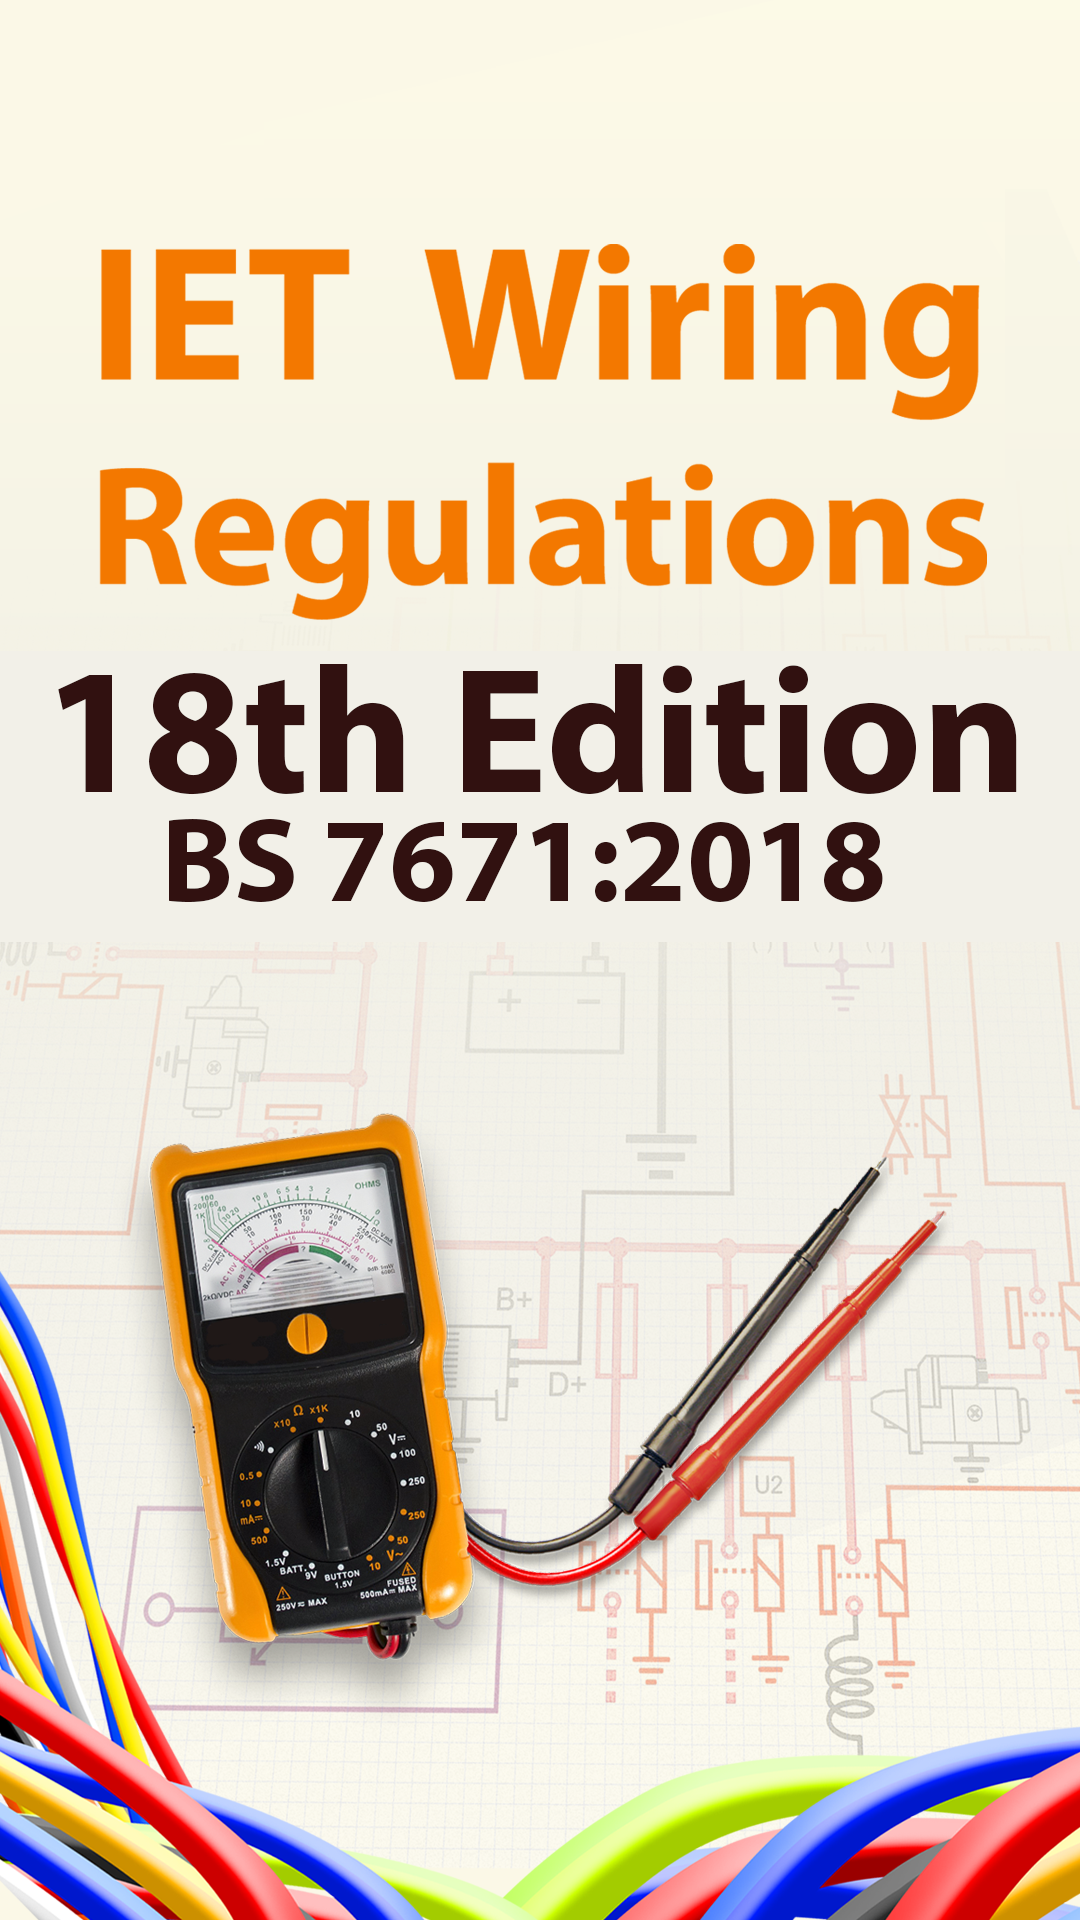 Iet Wiring Regulations 18th Edition Appstore For Android Regs Books